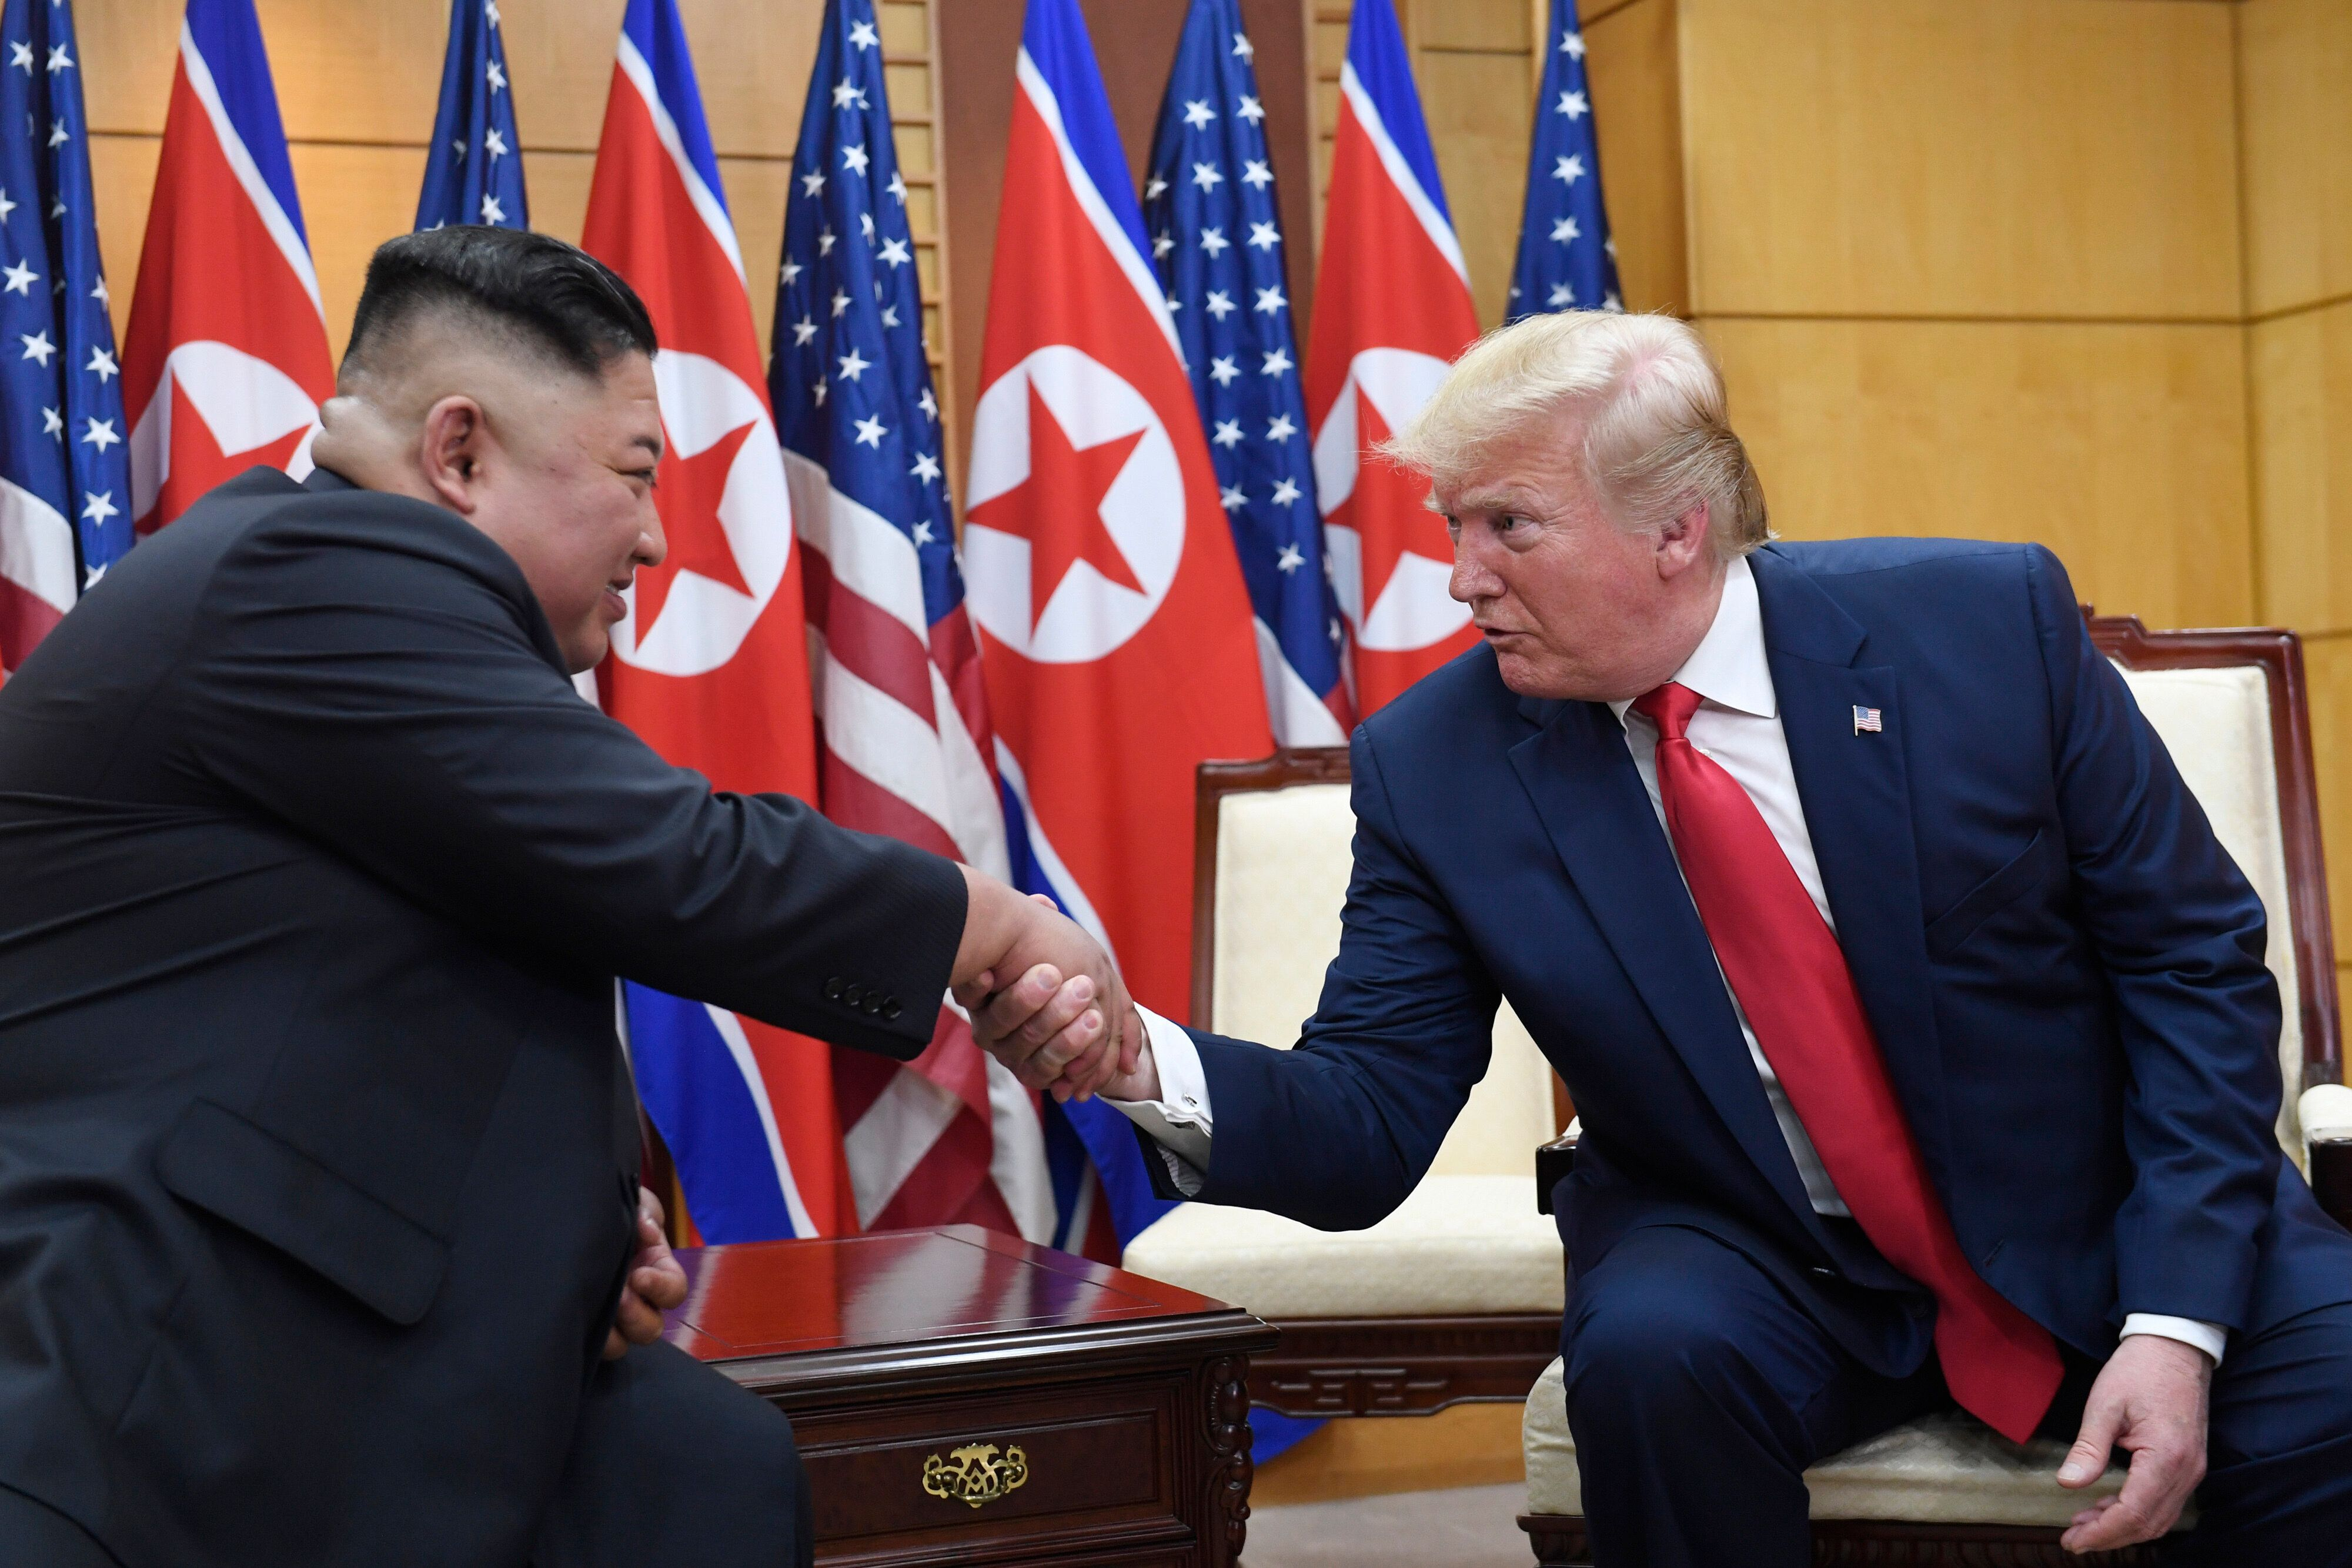 FILE - In this June 30, 2019, file photo, U.S. President Donald Trump, right, meets with North Korean leader Kim Jong Un at t